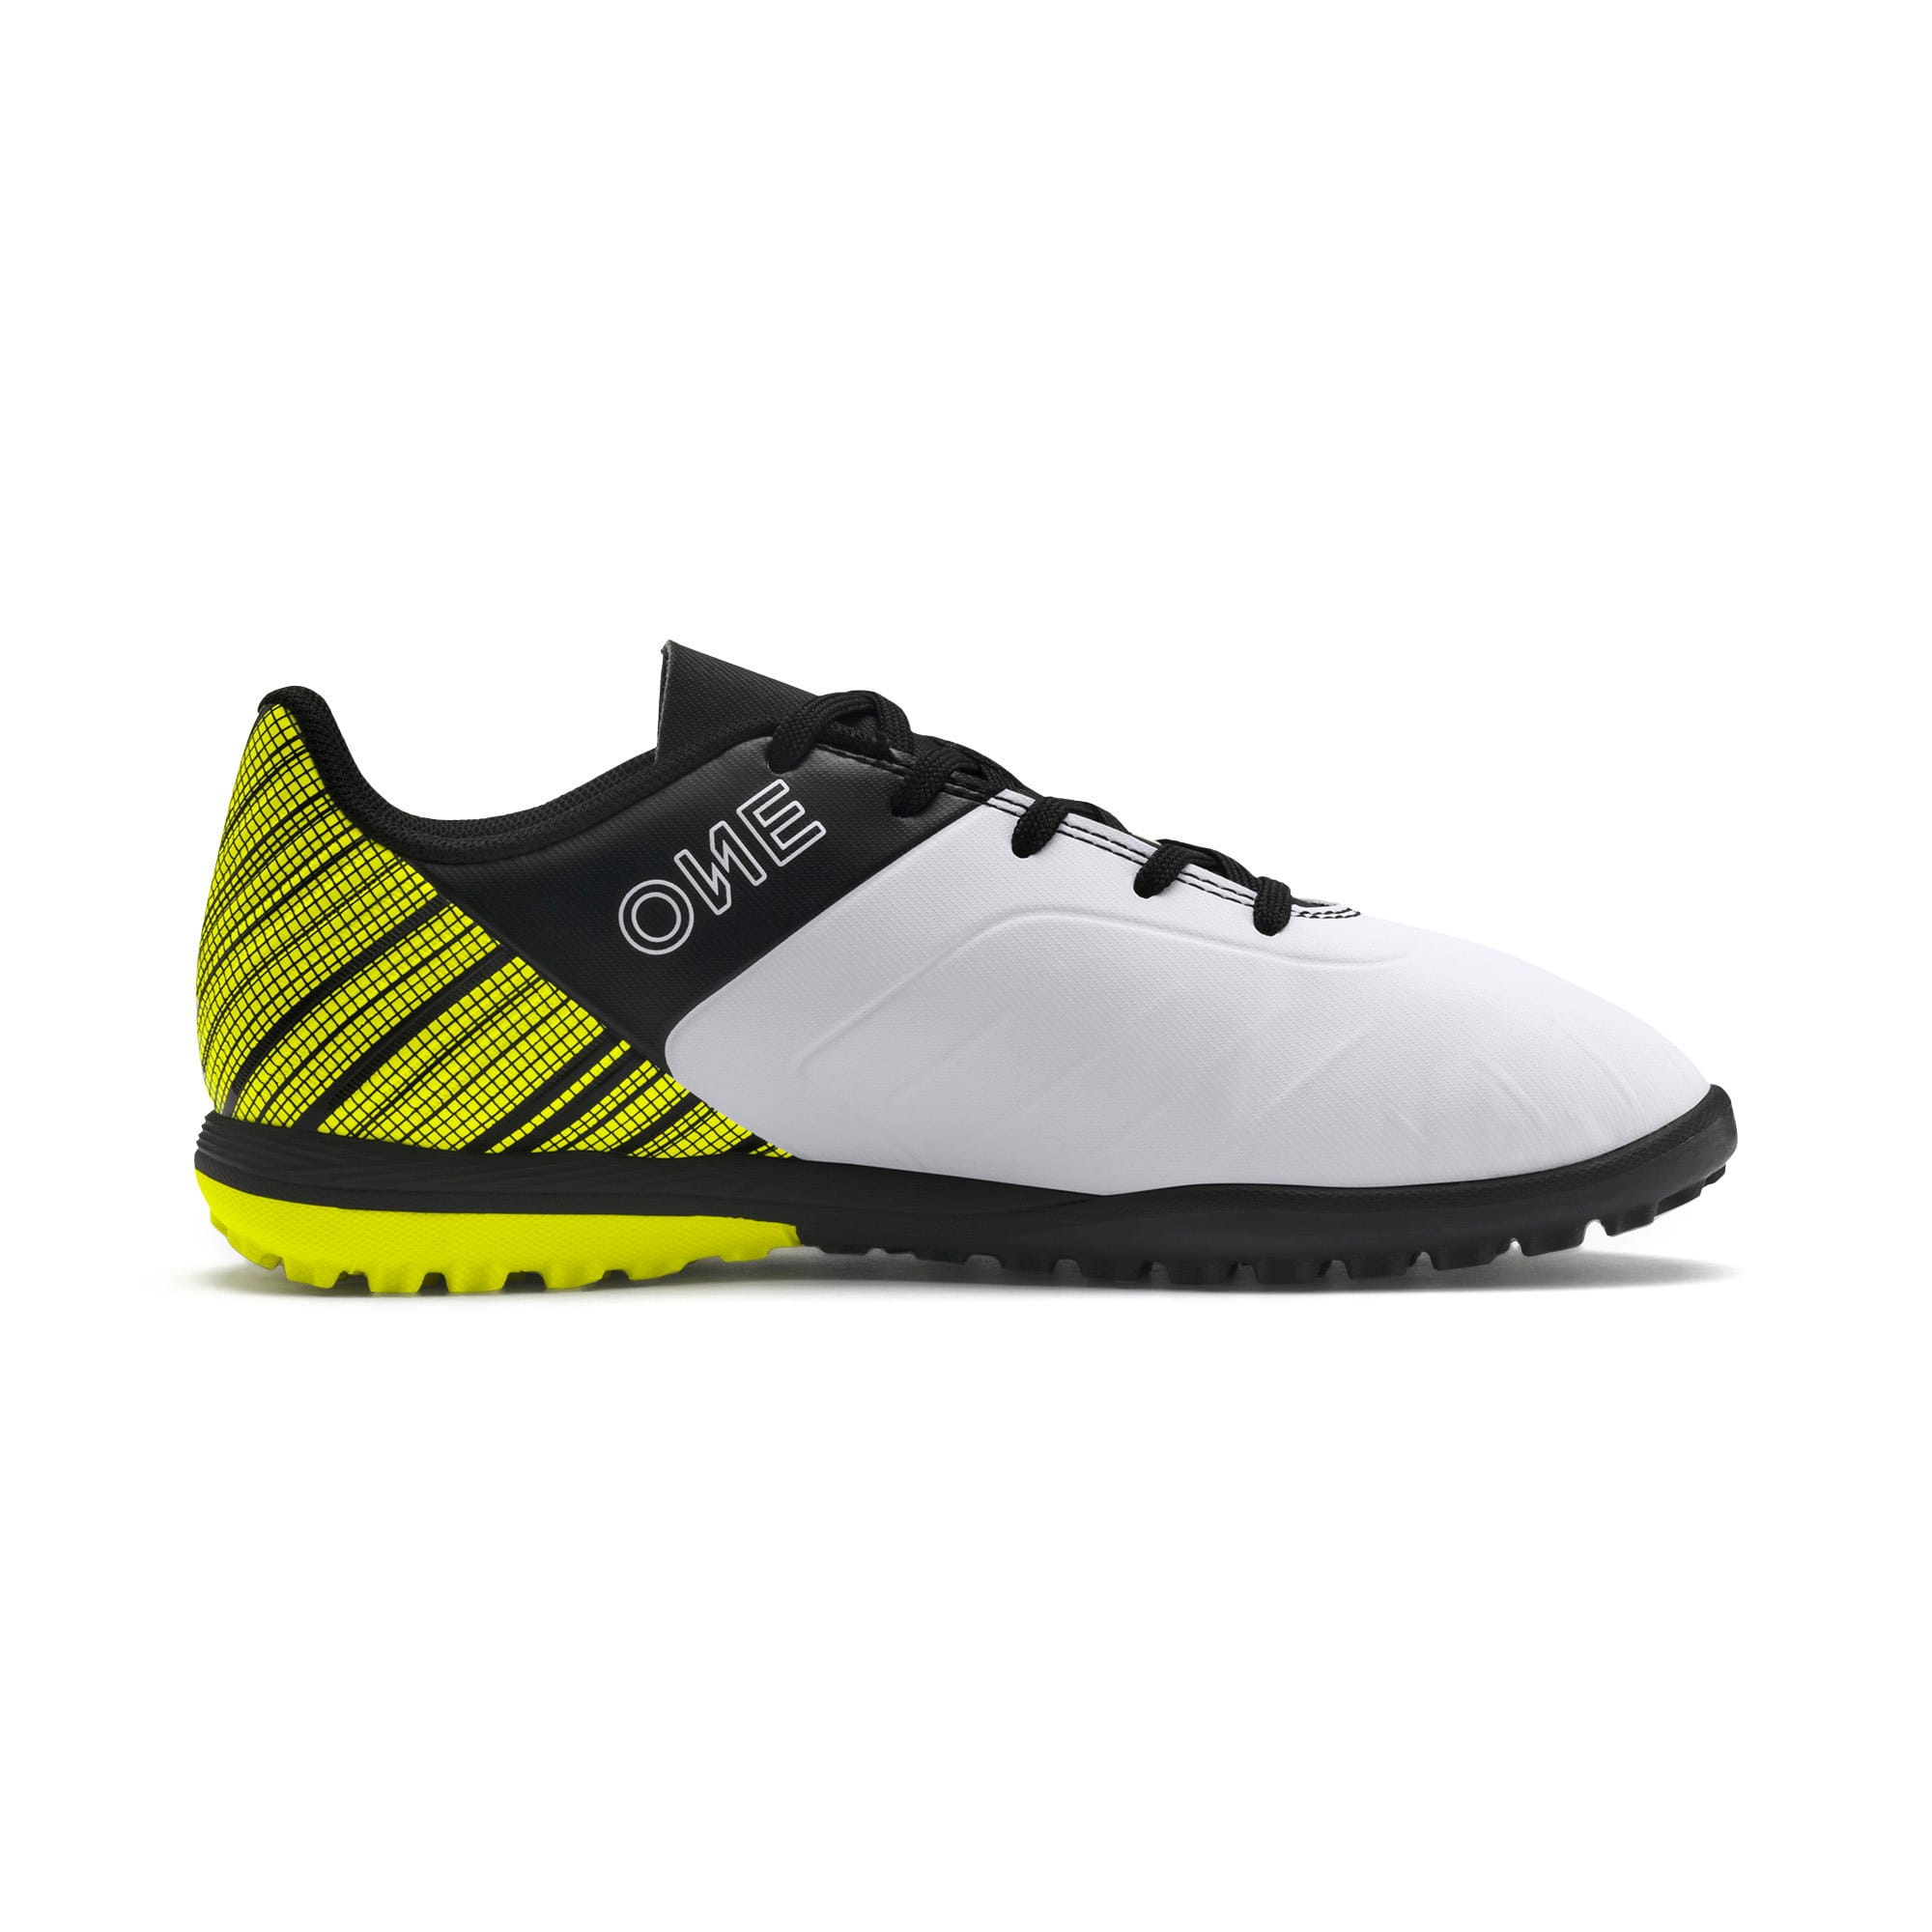 Thumbnail 5 of PUMA ONE 5.4 TT Youth Football Boots, White-Black-Yellow Alert, medium